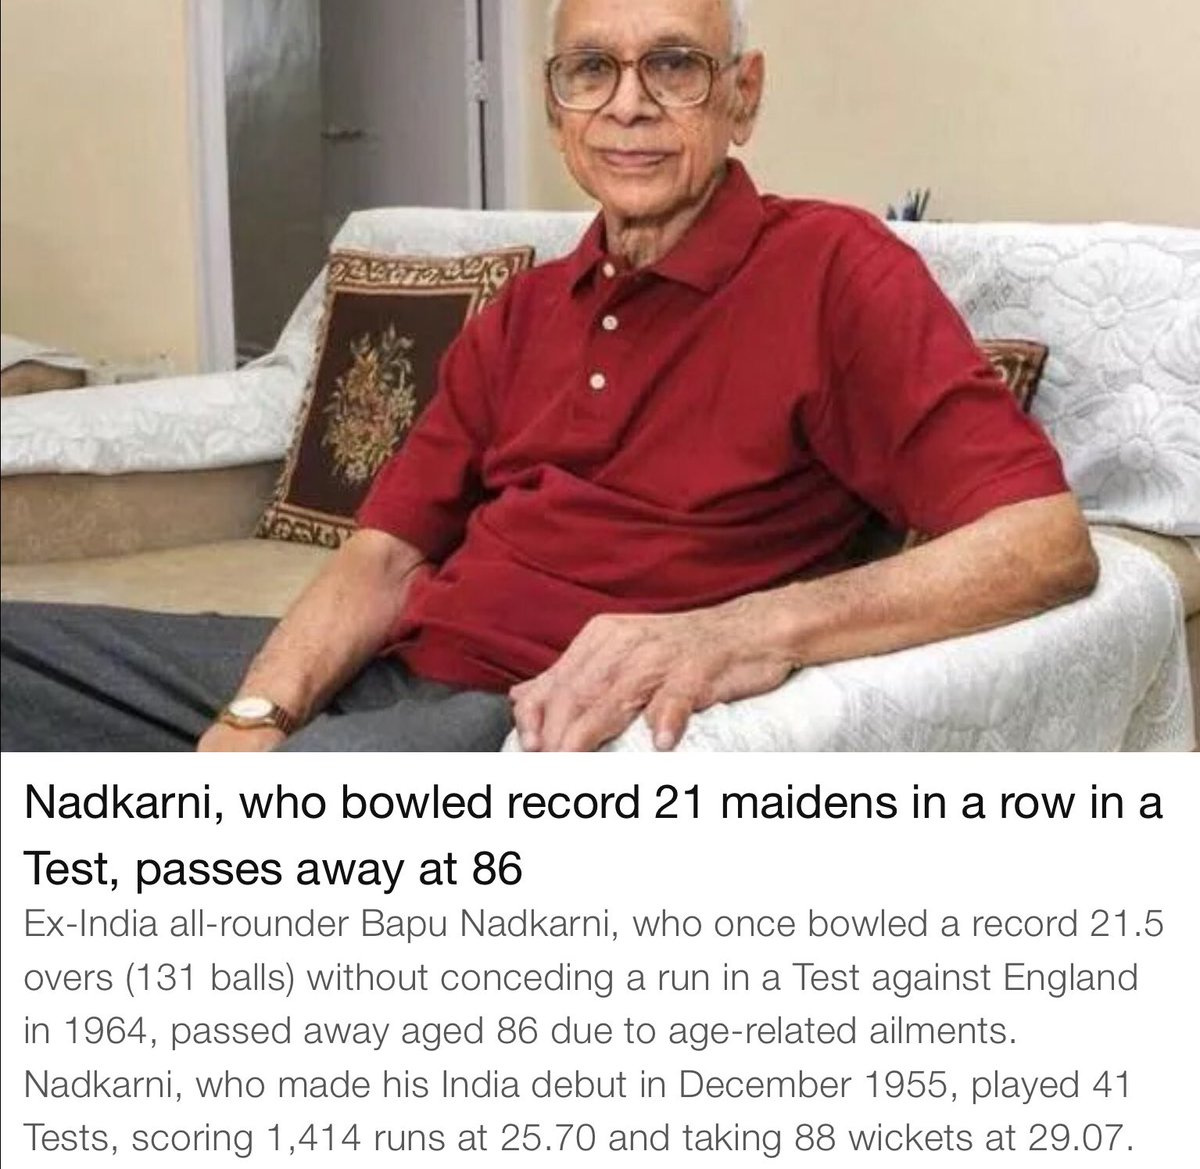 Great cricketer of 'Test Cricket' period. May his soul rest in peace. <br>http://pic.twitter.com/ujHKmplqHr